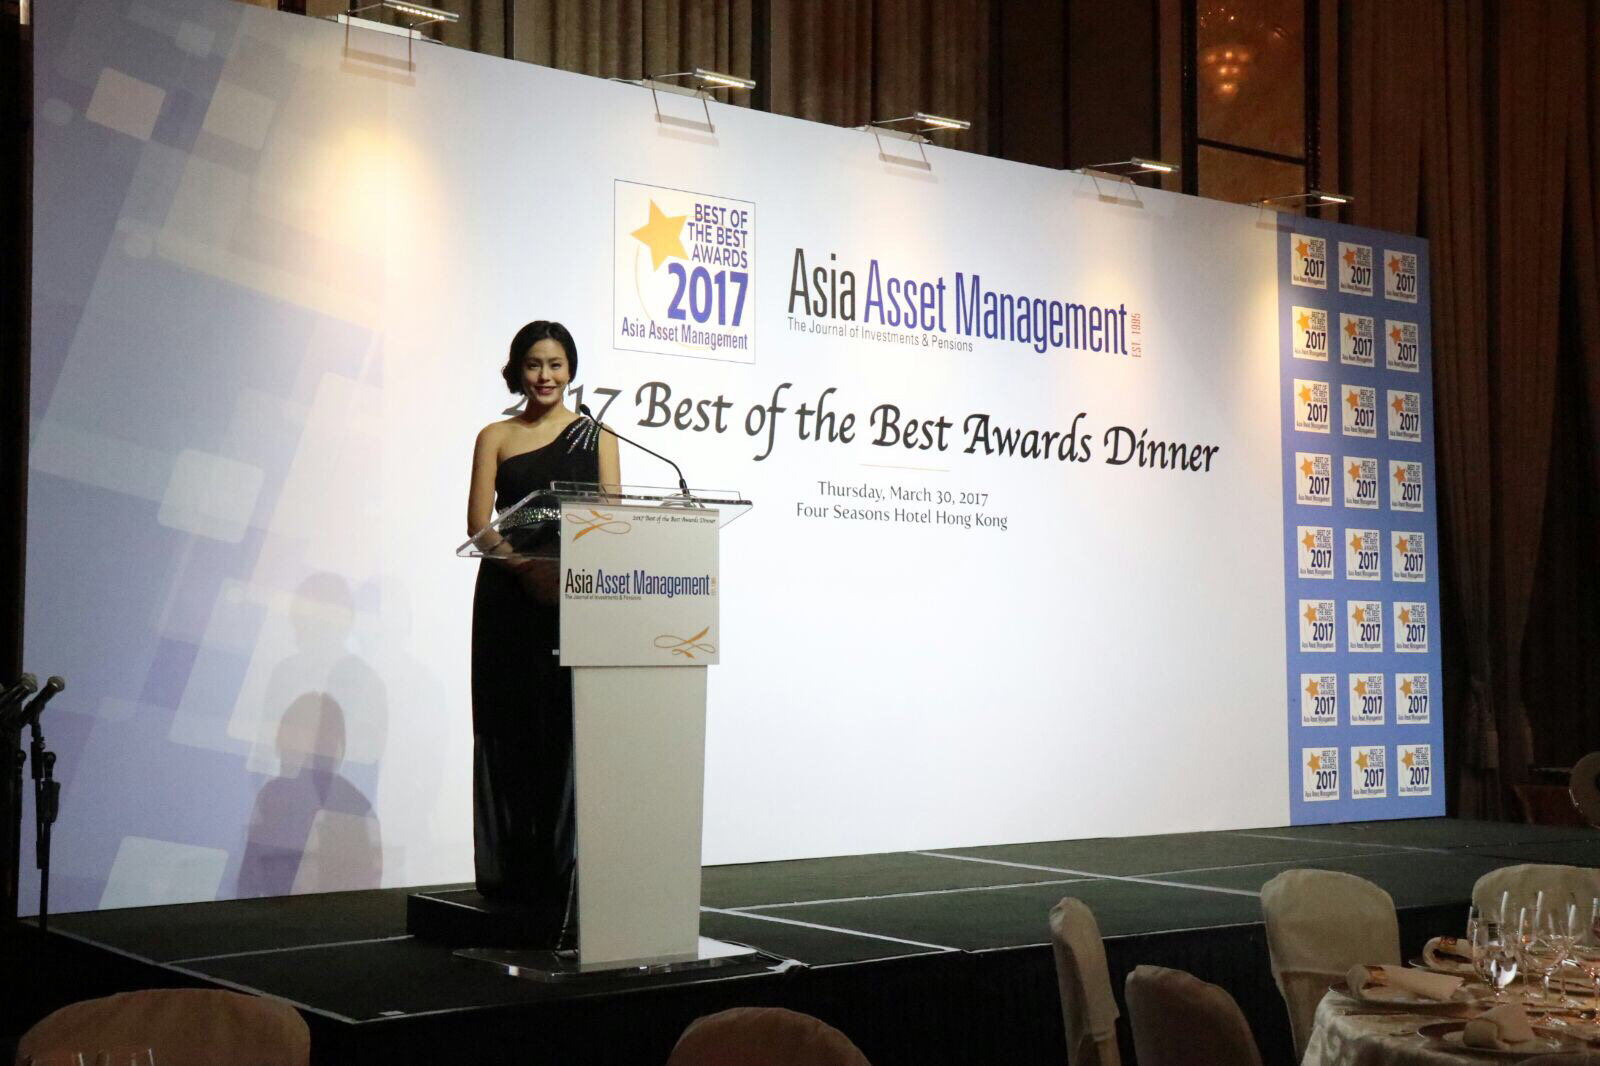 Xaviera Yau司儀工作紀錄: Asia Asset Management - Best of the Best Awards dinner 2017